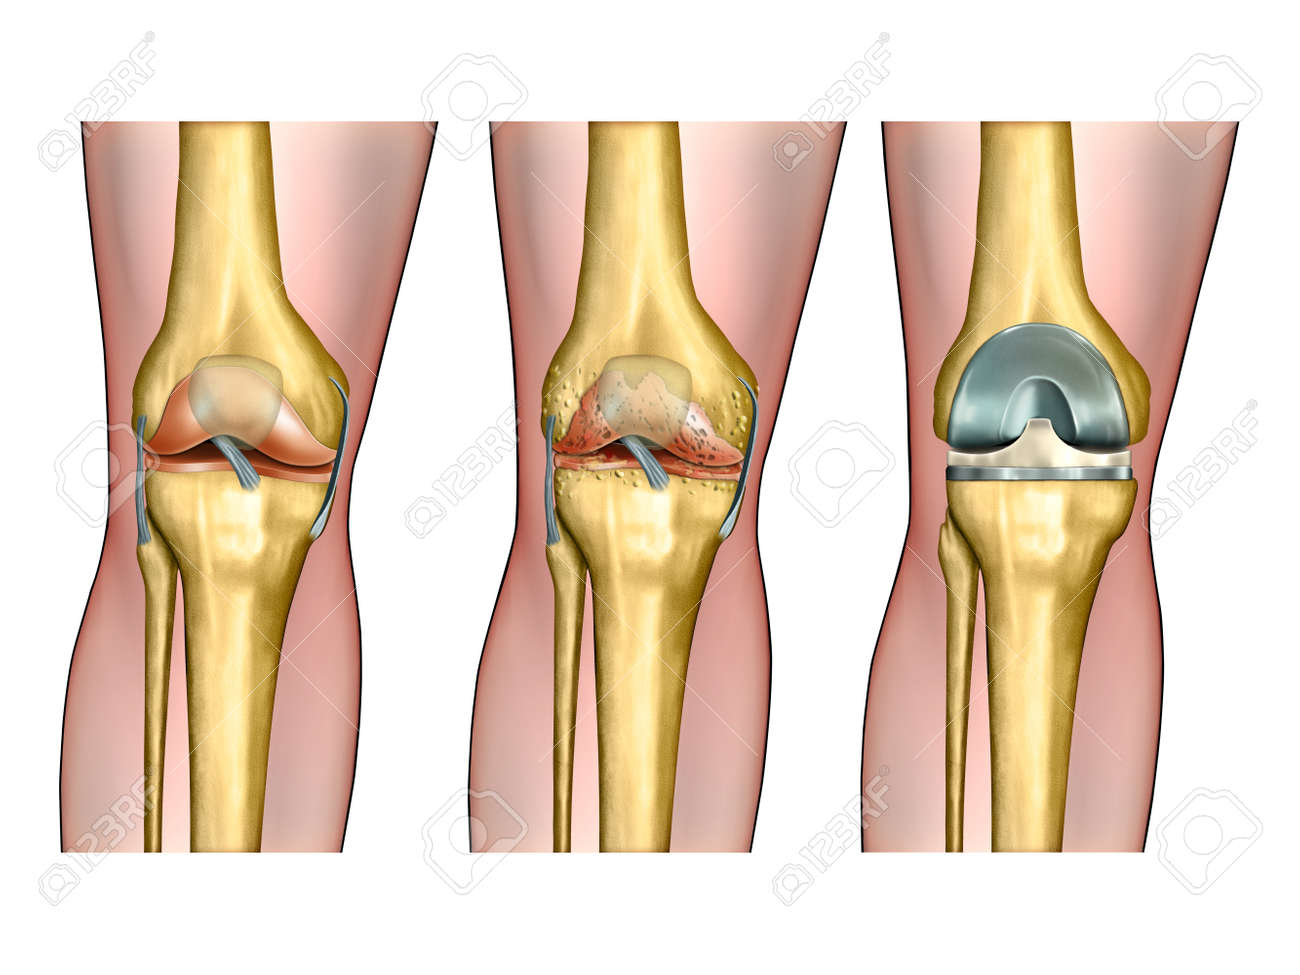 Healthy Knee Anatomy Degenerative Arthritis Of The Knee And Stock